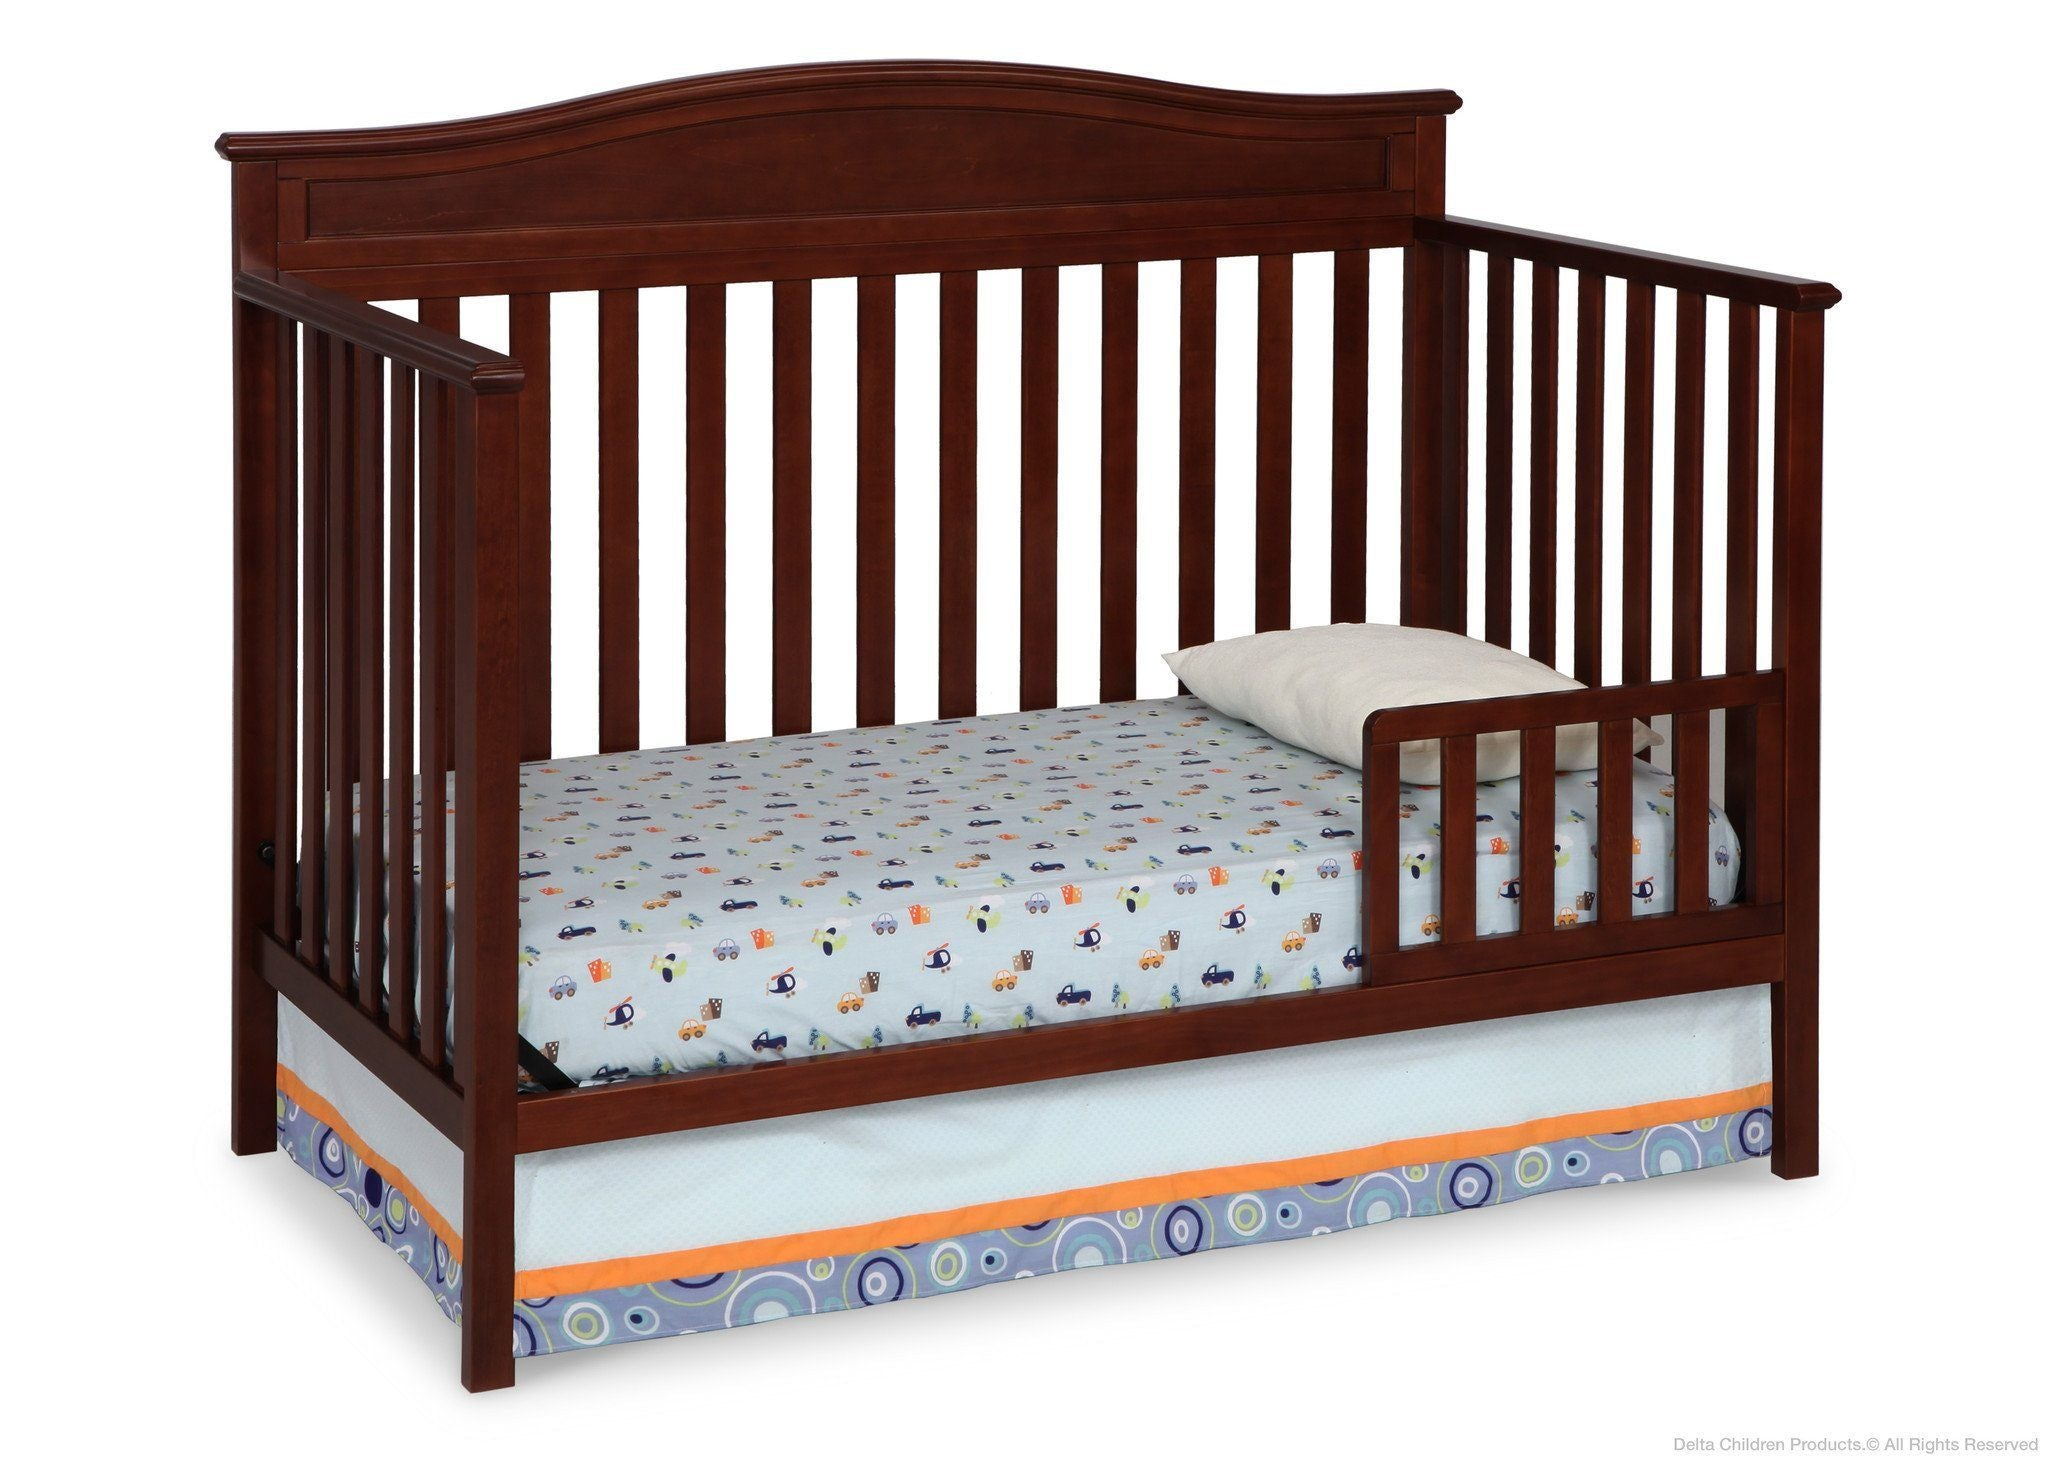 Superior ... Delta Children Merlot (615) Larkin 4 In 1 Crib, Toddler Bed ...